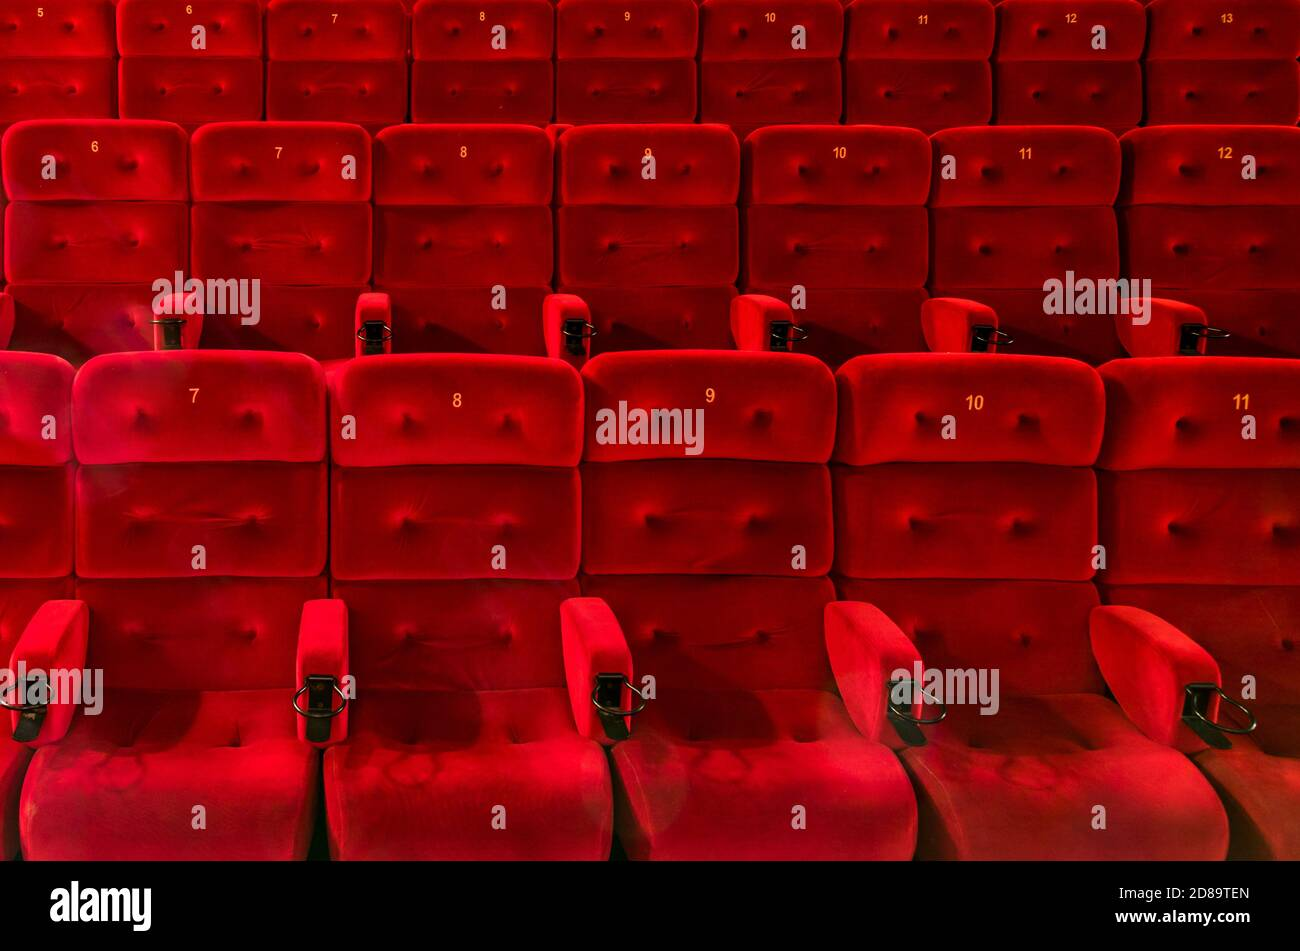 Empty comfortable red seats with numbers in the hall of the cinema or theate Stock Photo